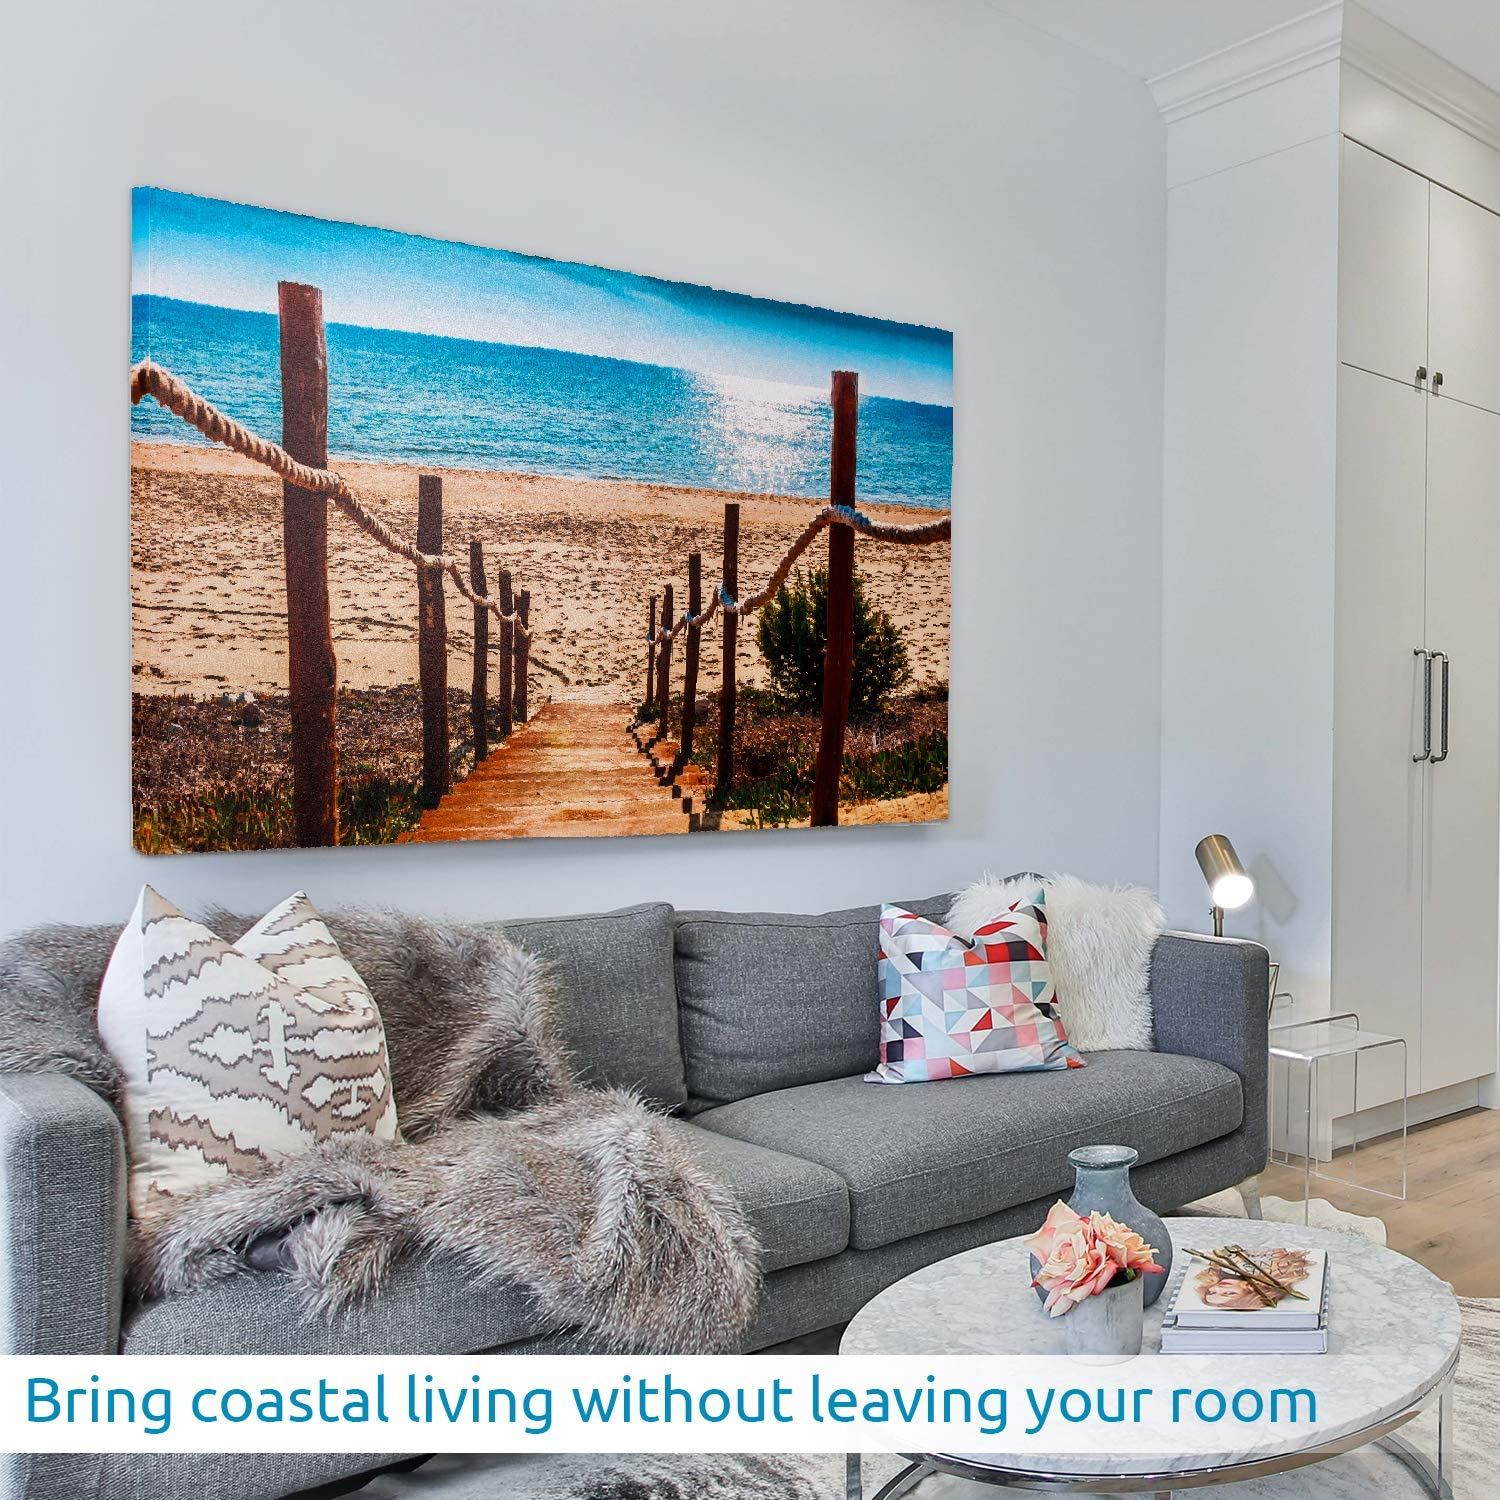 Wynniece Waterfront Boardwalk Beach Decor | Tropical Ocean Canvas Wall Art | Coastal Themed Decoration | Perfect Picture for Your Home, Beach House, Office, or Vacation Rental